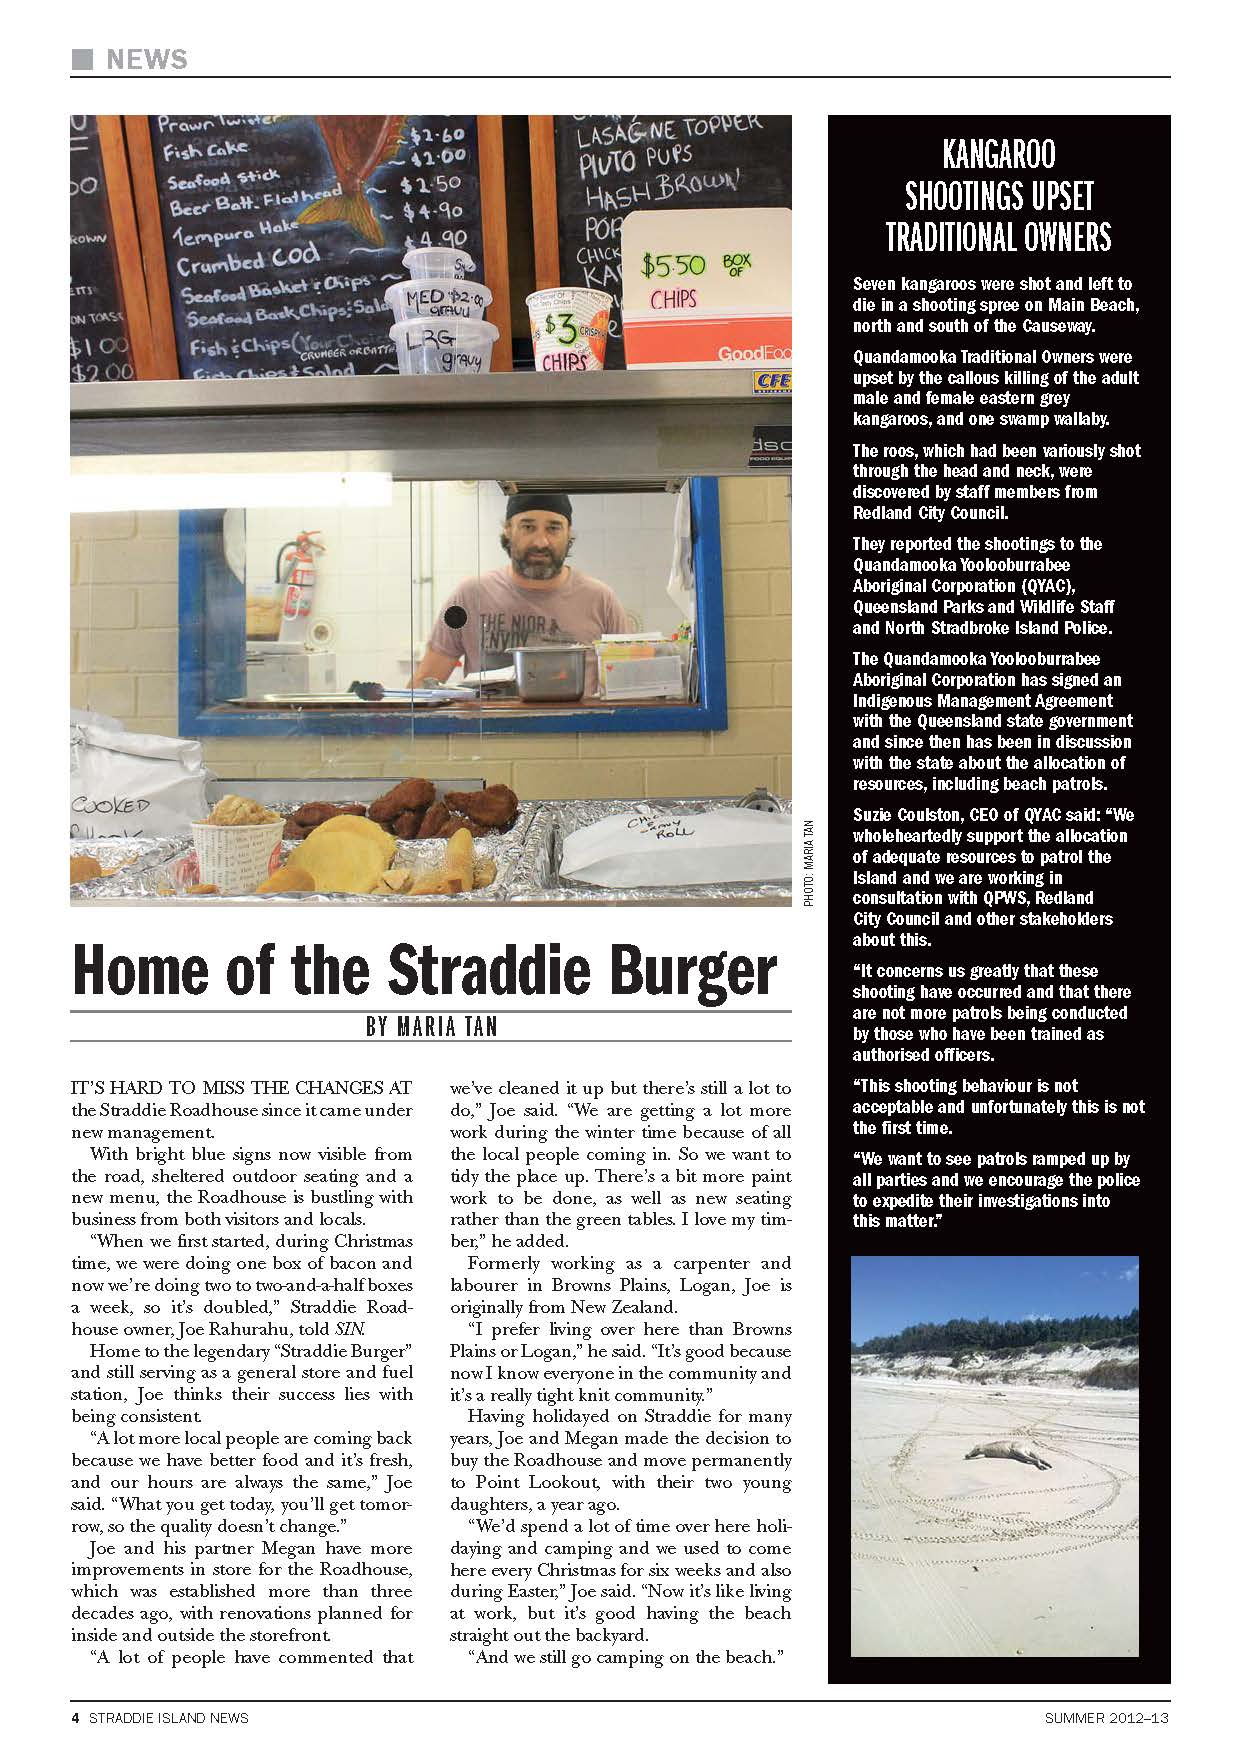 SIN_Summer_2012-13_articles_Page_1.jpg